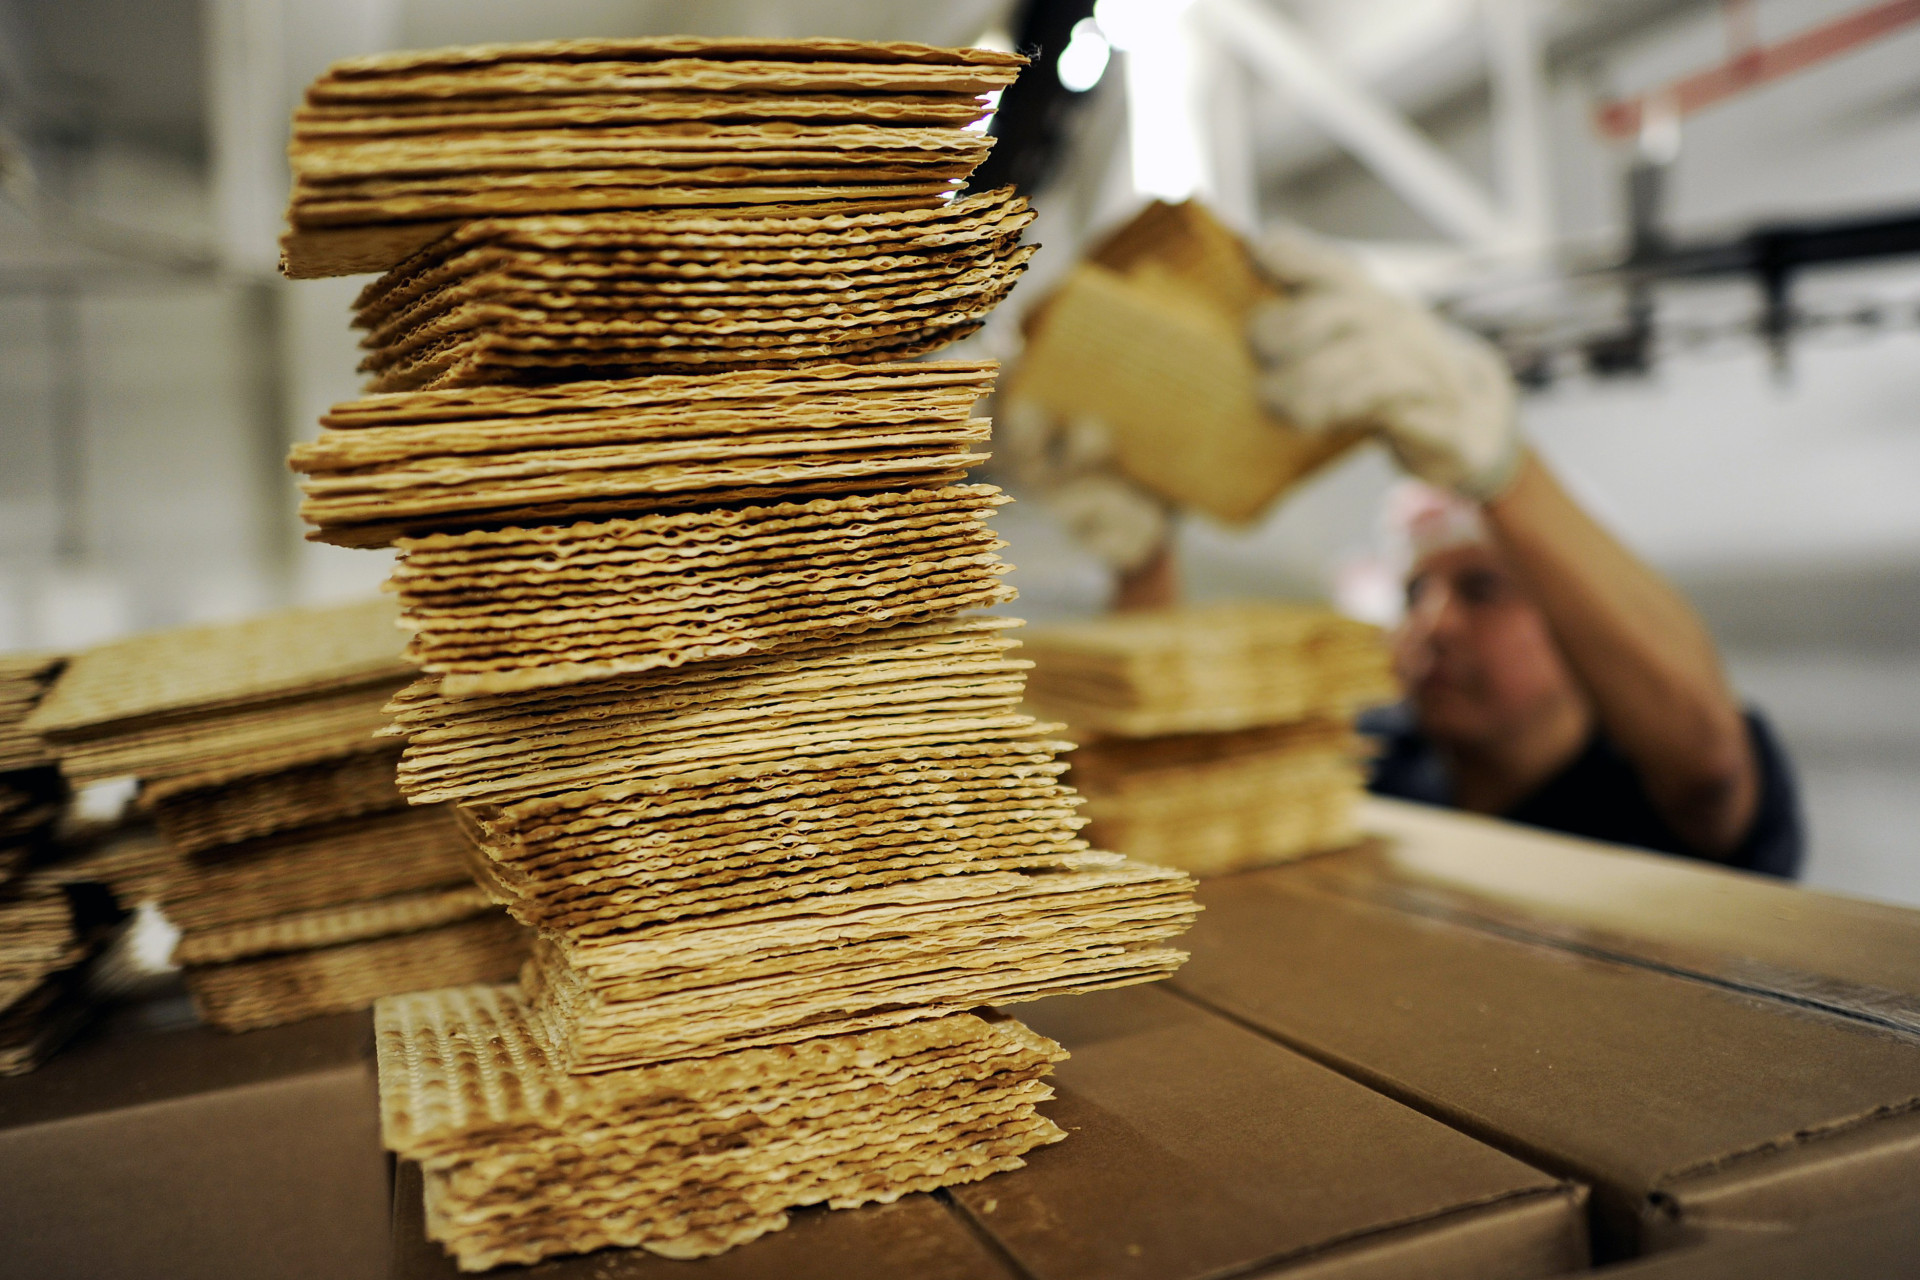 A worker stacks matzo wafers at Streit's matzo factory on the Lower East Side of New York, May 2012.